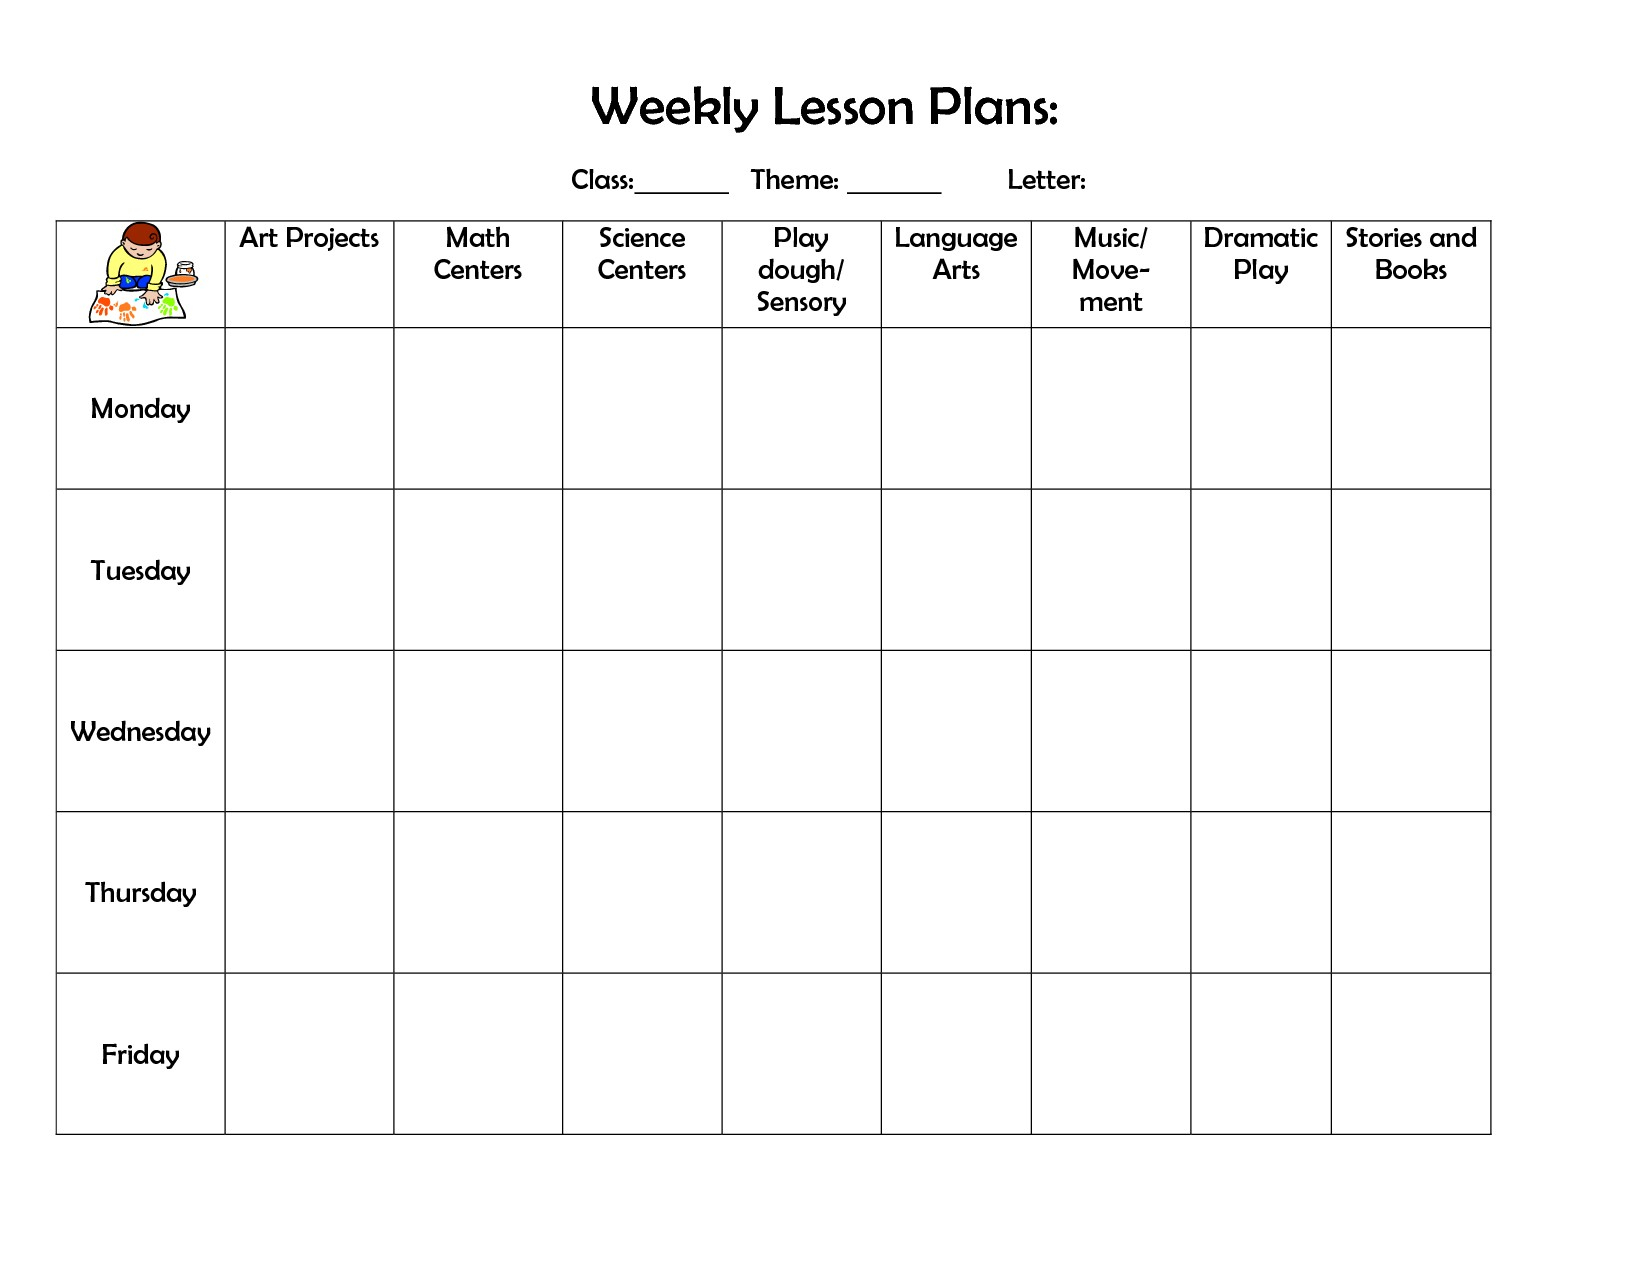 Lesson Plans Calendars | Xorforums pertaining to Weekly Calander Lesson Plan Template